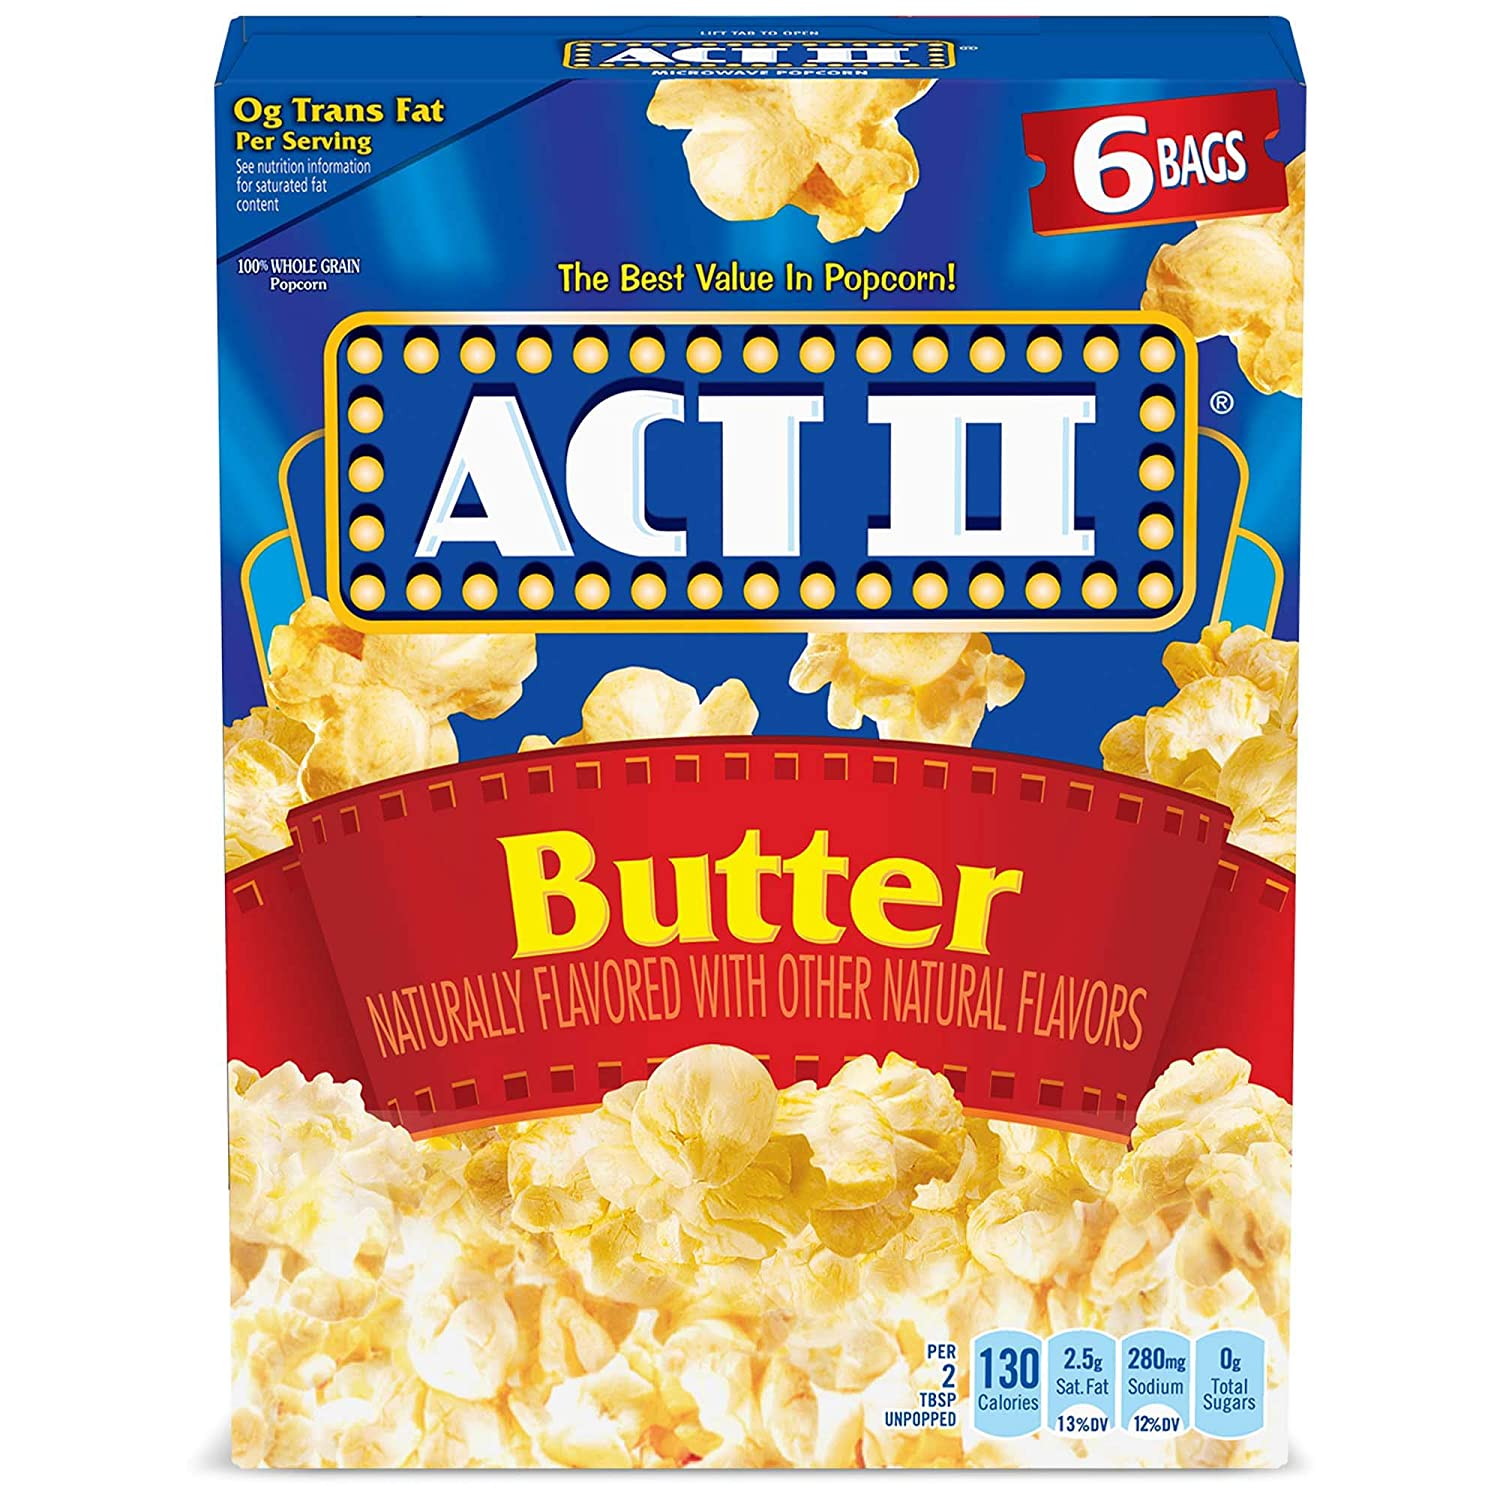 ACT II Butter Microwave Popcorn, 6-Count 2.75-oz. Bags (Pack of 6)